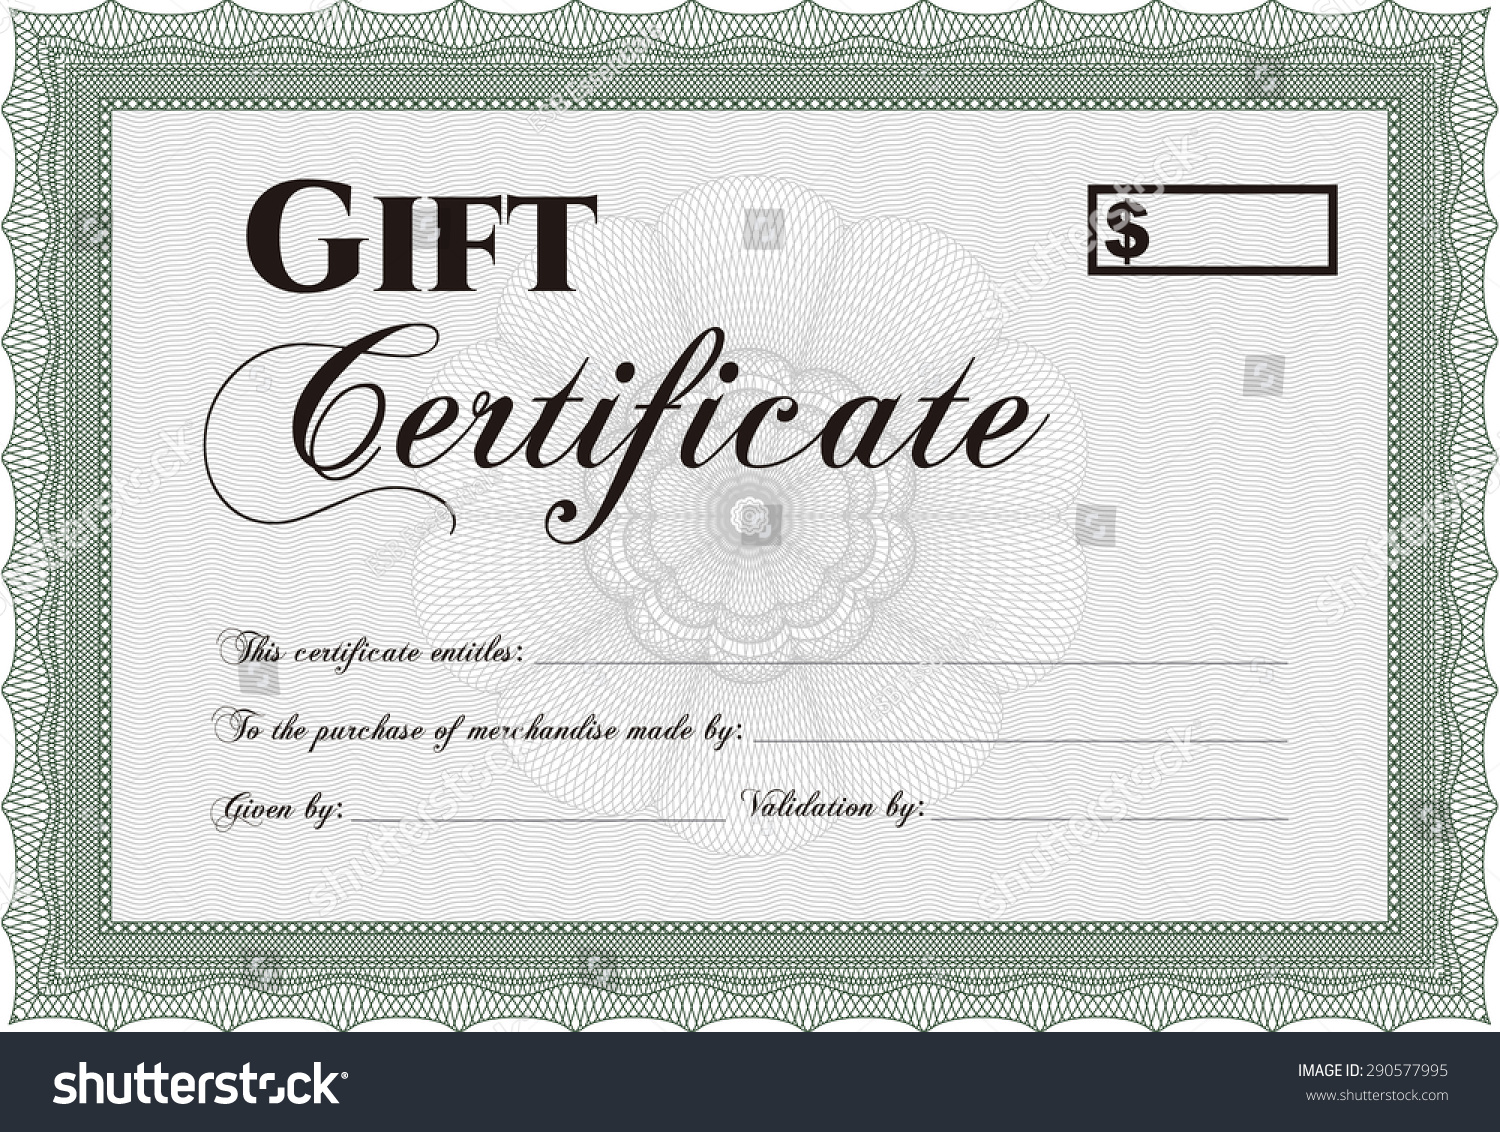 Martial Arts Certificate Template Free Templates In DOC Mandegarinfo - Martial arts gift certificate template